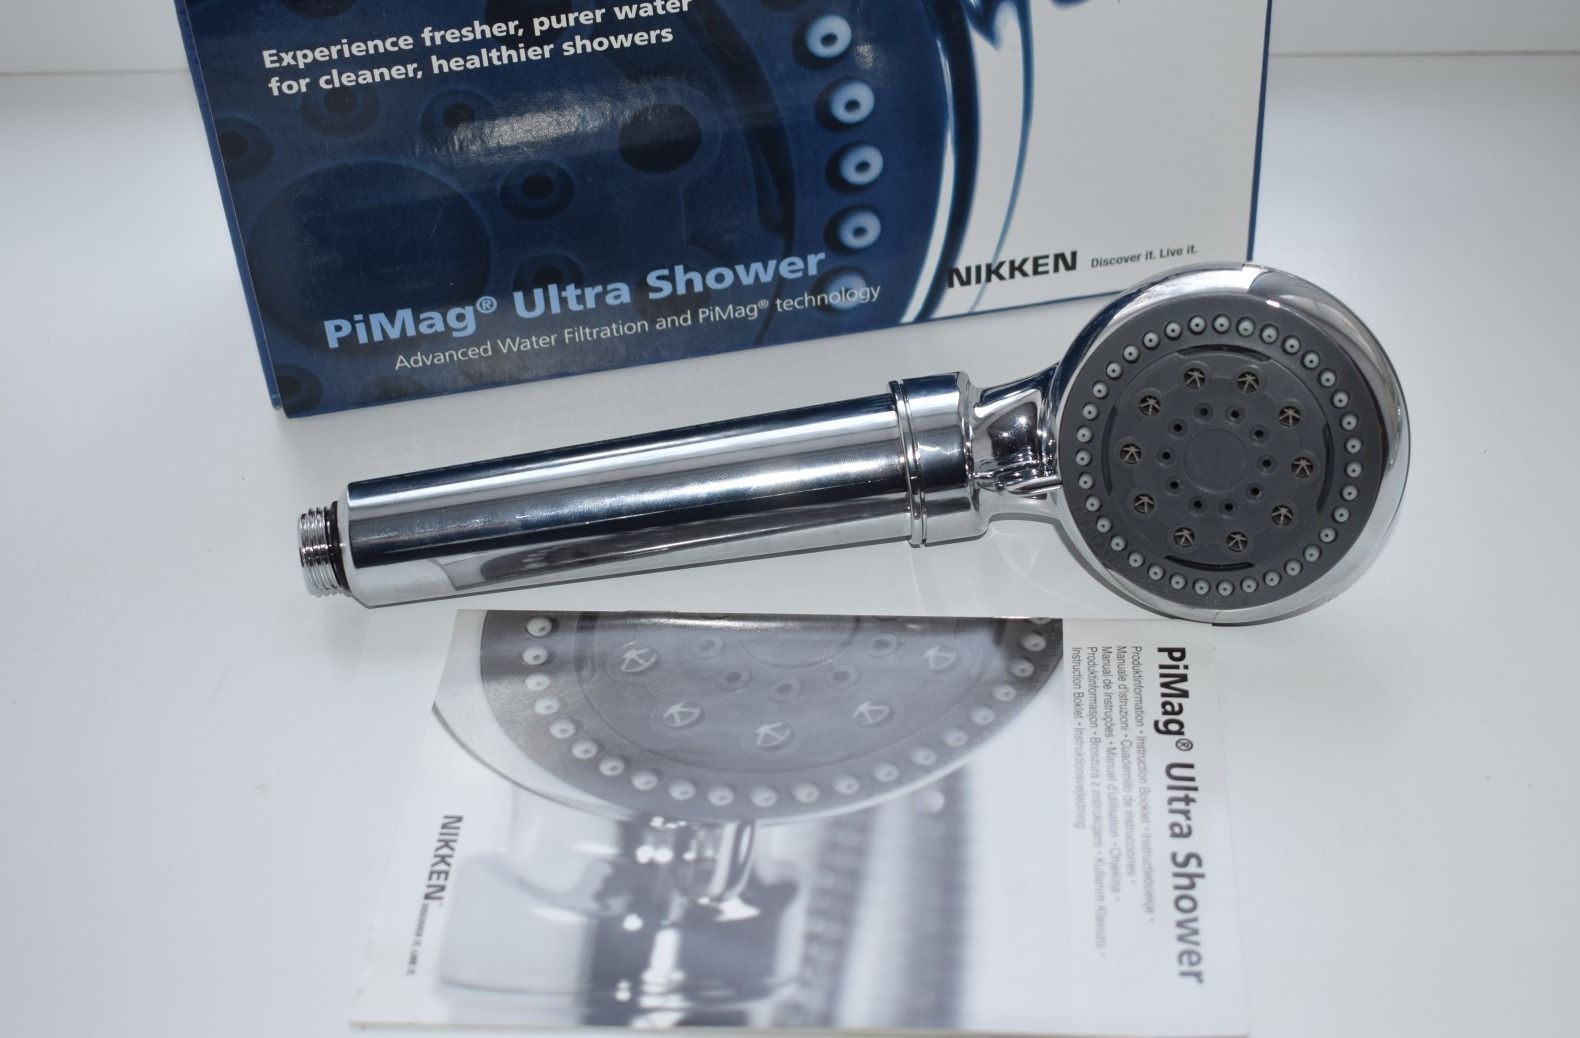 Насадка для душа Nikken PiMag Ultra Shower